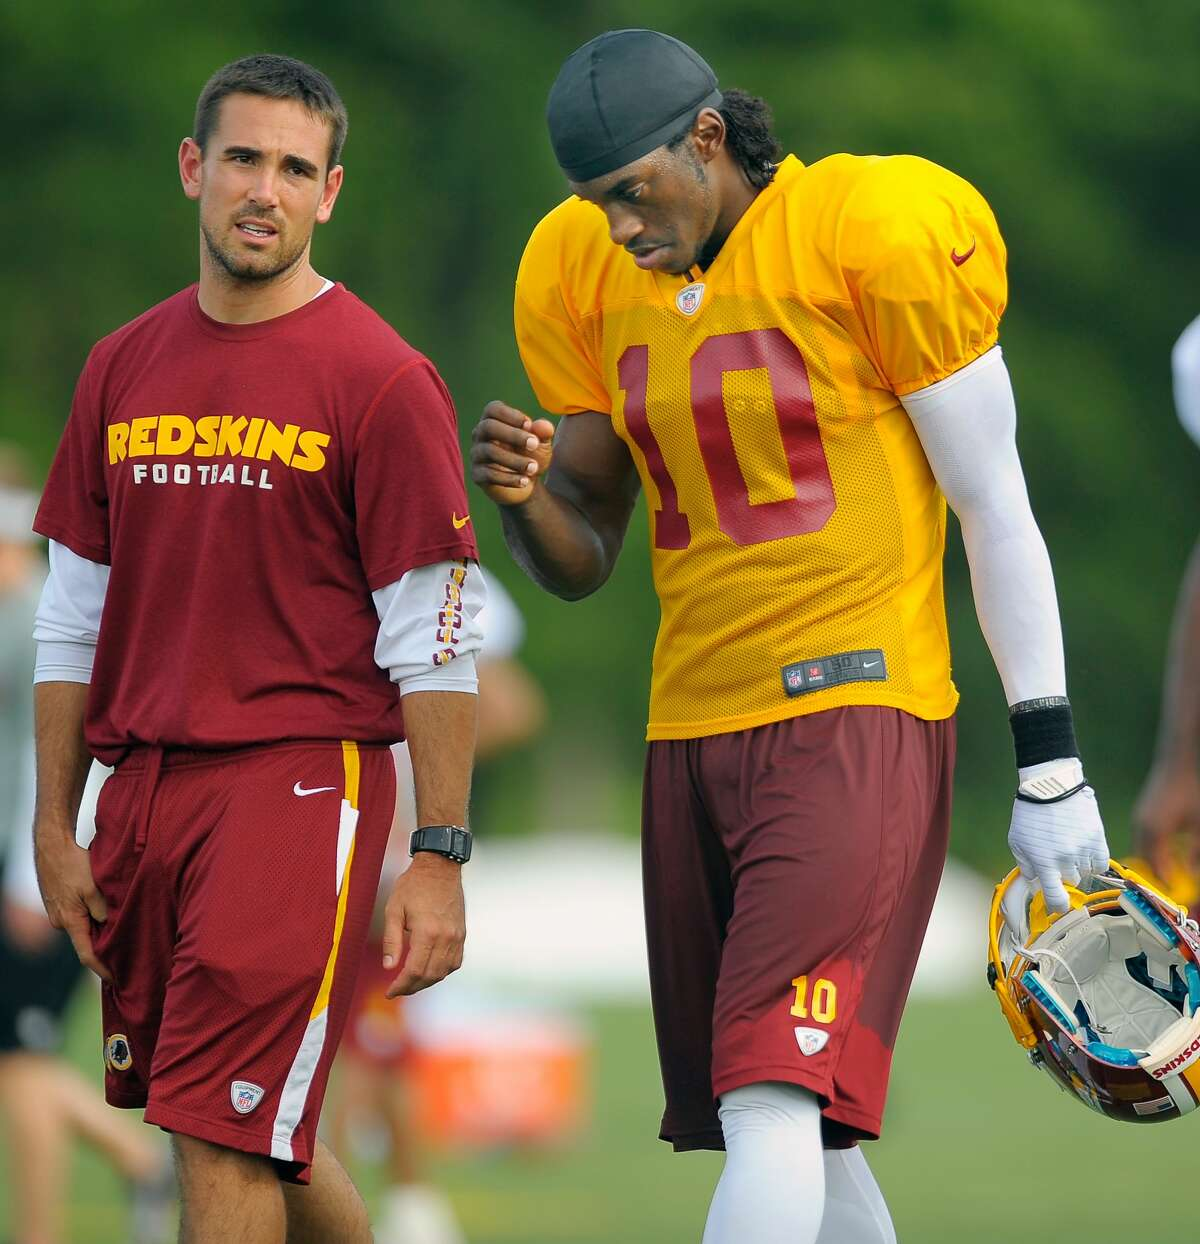 ASHBURN VA JULY 28: Washington Redskins' quarterbacks coach Matt LaFleur, left, walks off the field with rookie quarterback Robert Griffin III after the 3rd day of training camp at Redskins Park in Ashburn VA July 28 2012 (Photo by John McDonnell/The Washington Post via Getty Images)